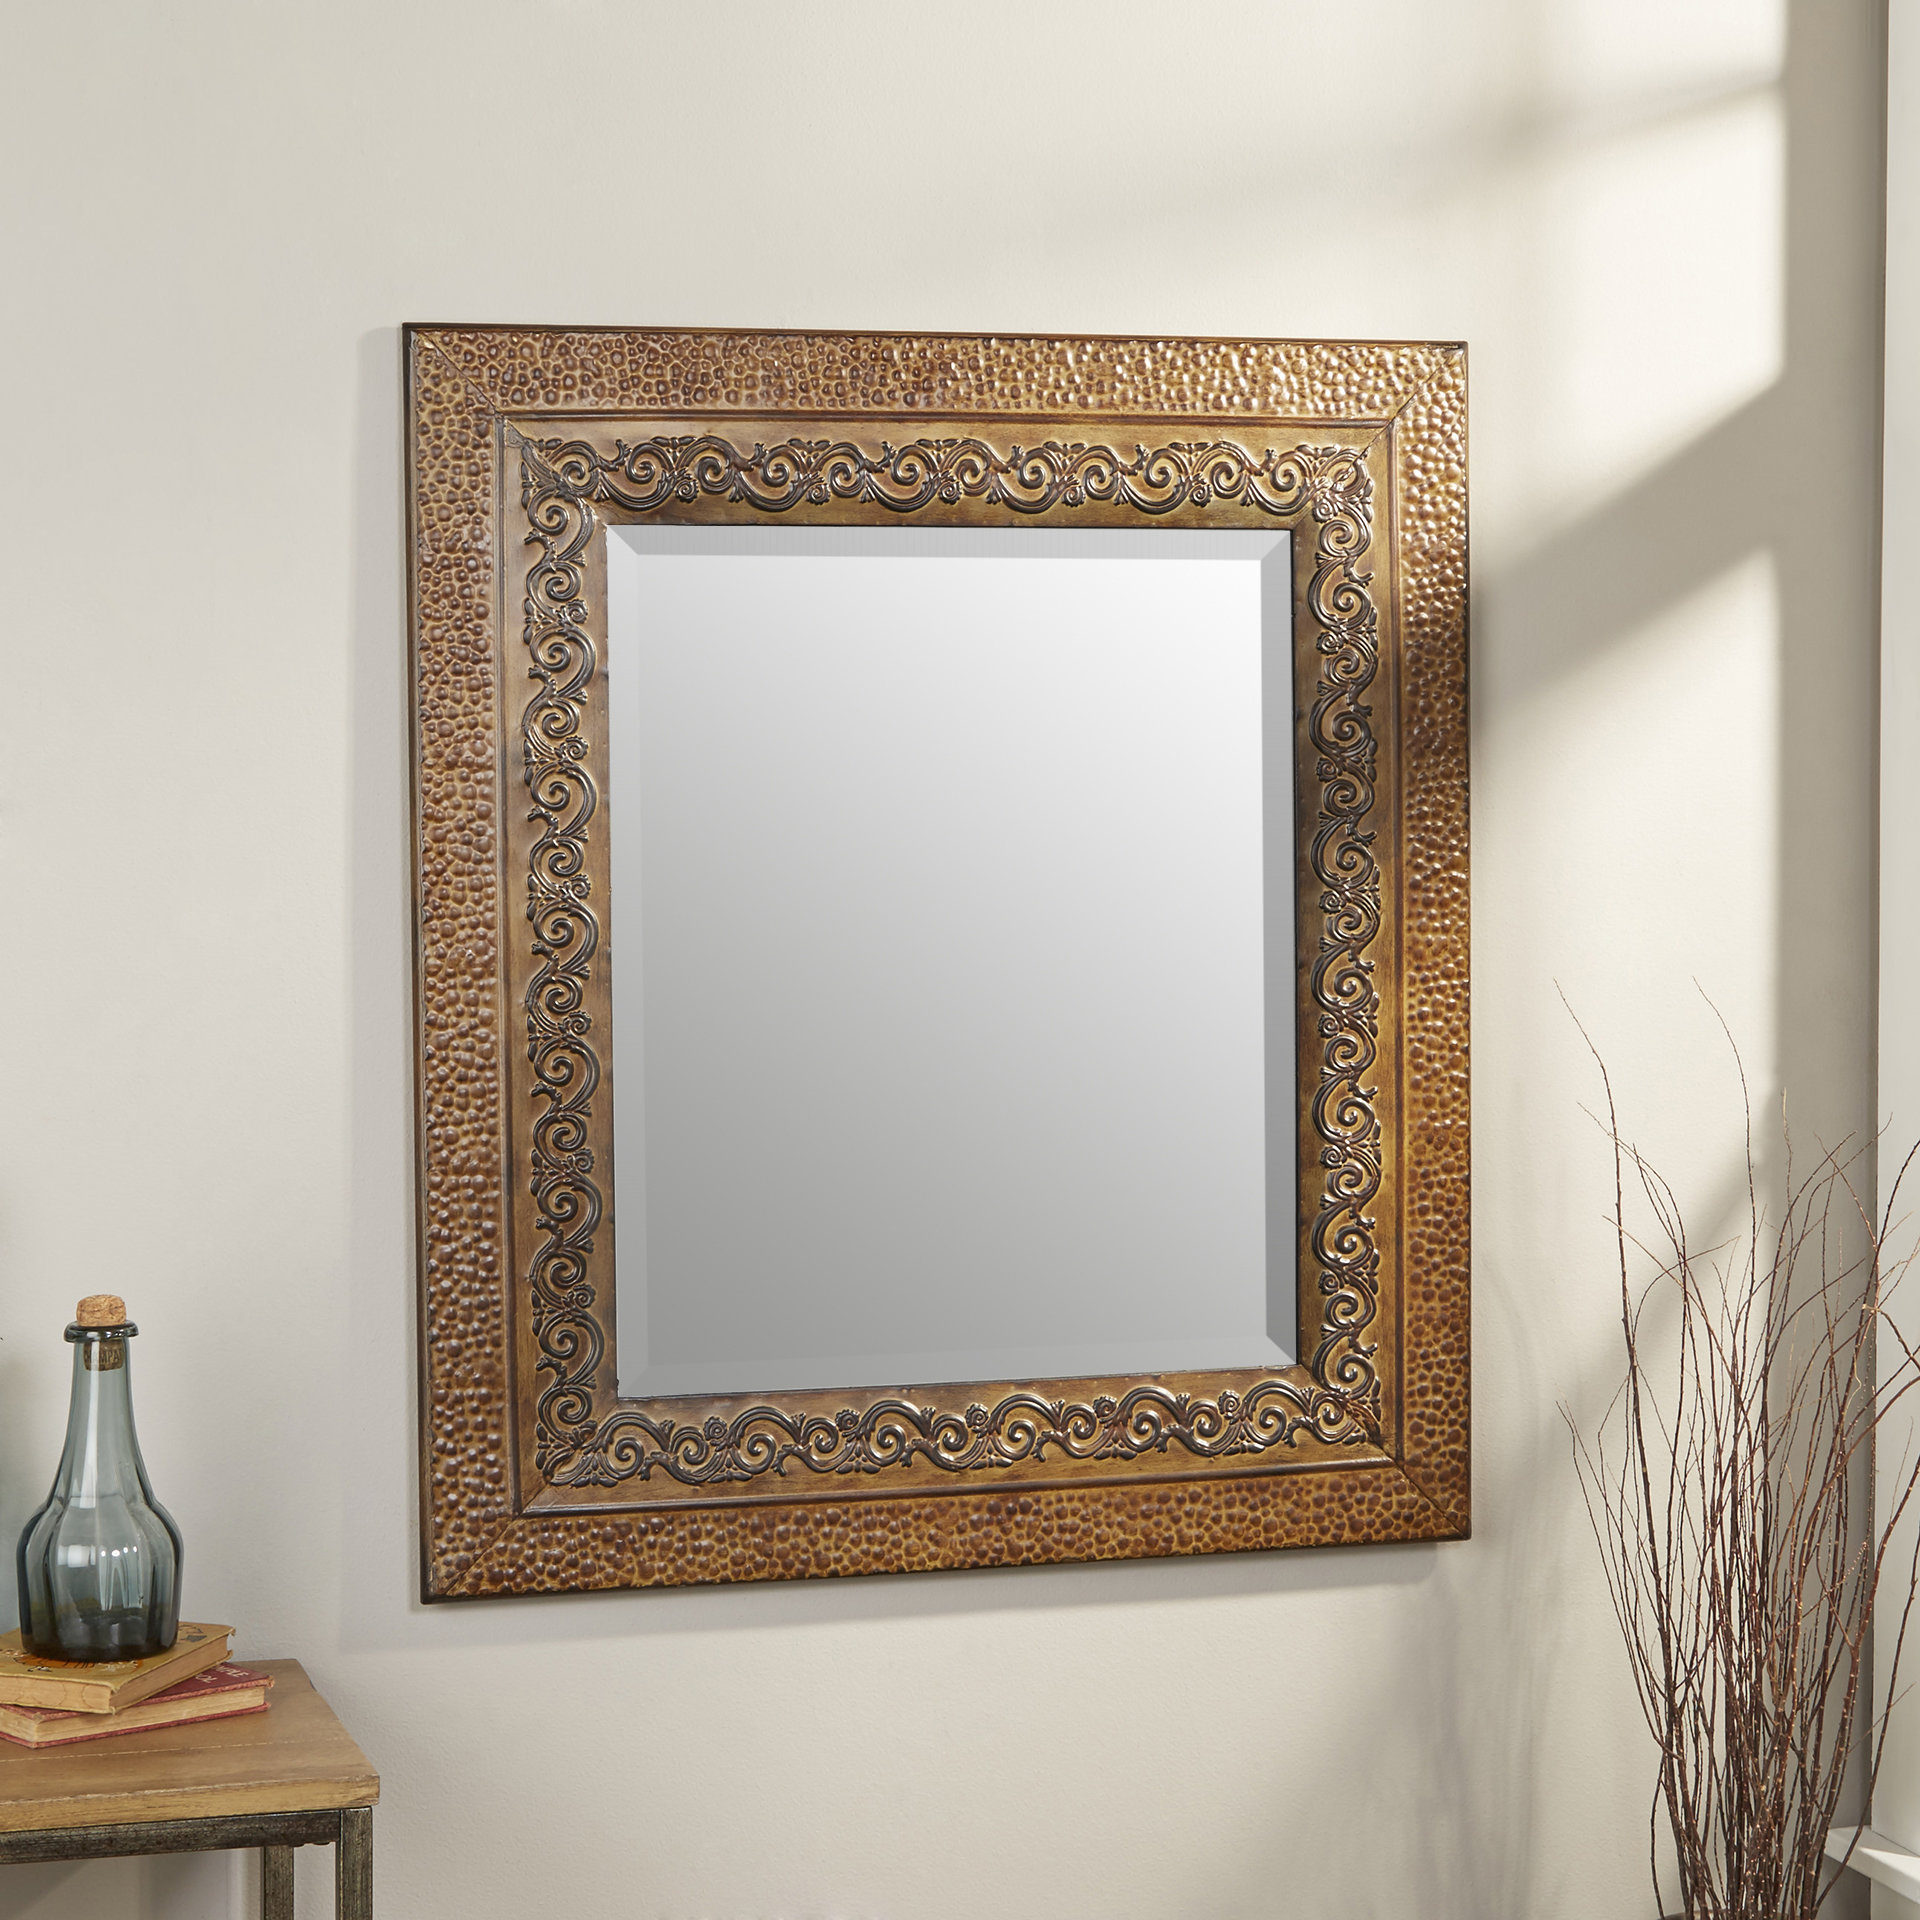 Union Rustic Longwood Rustic Beveled Accent Mirror | Birch Lane regarding Longwood Rustic Beveled Accent Mirrors (Image 26 of 30)